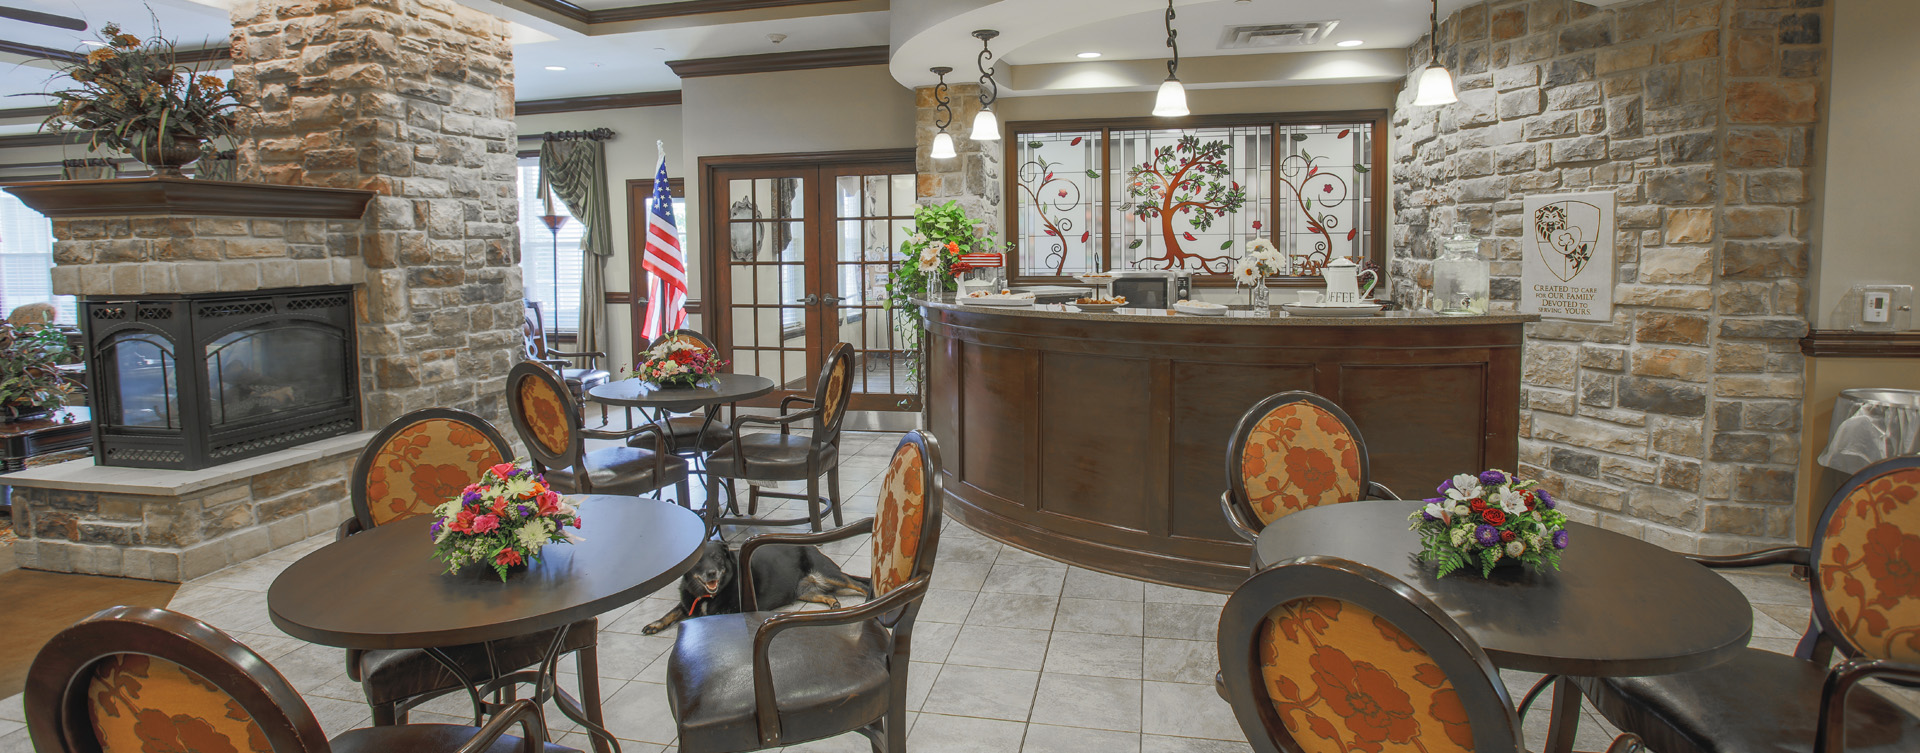 We're serving up snacks, beverages and service around the clock in the bistro at Bickford of Carmel